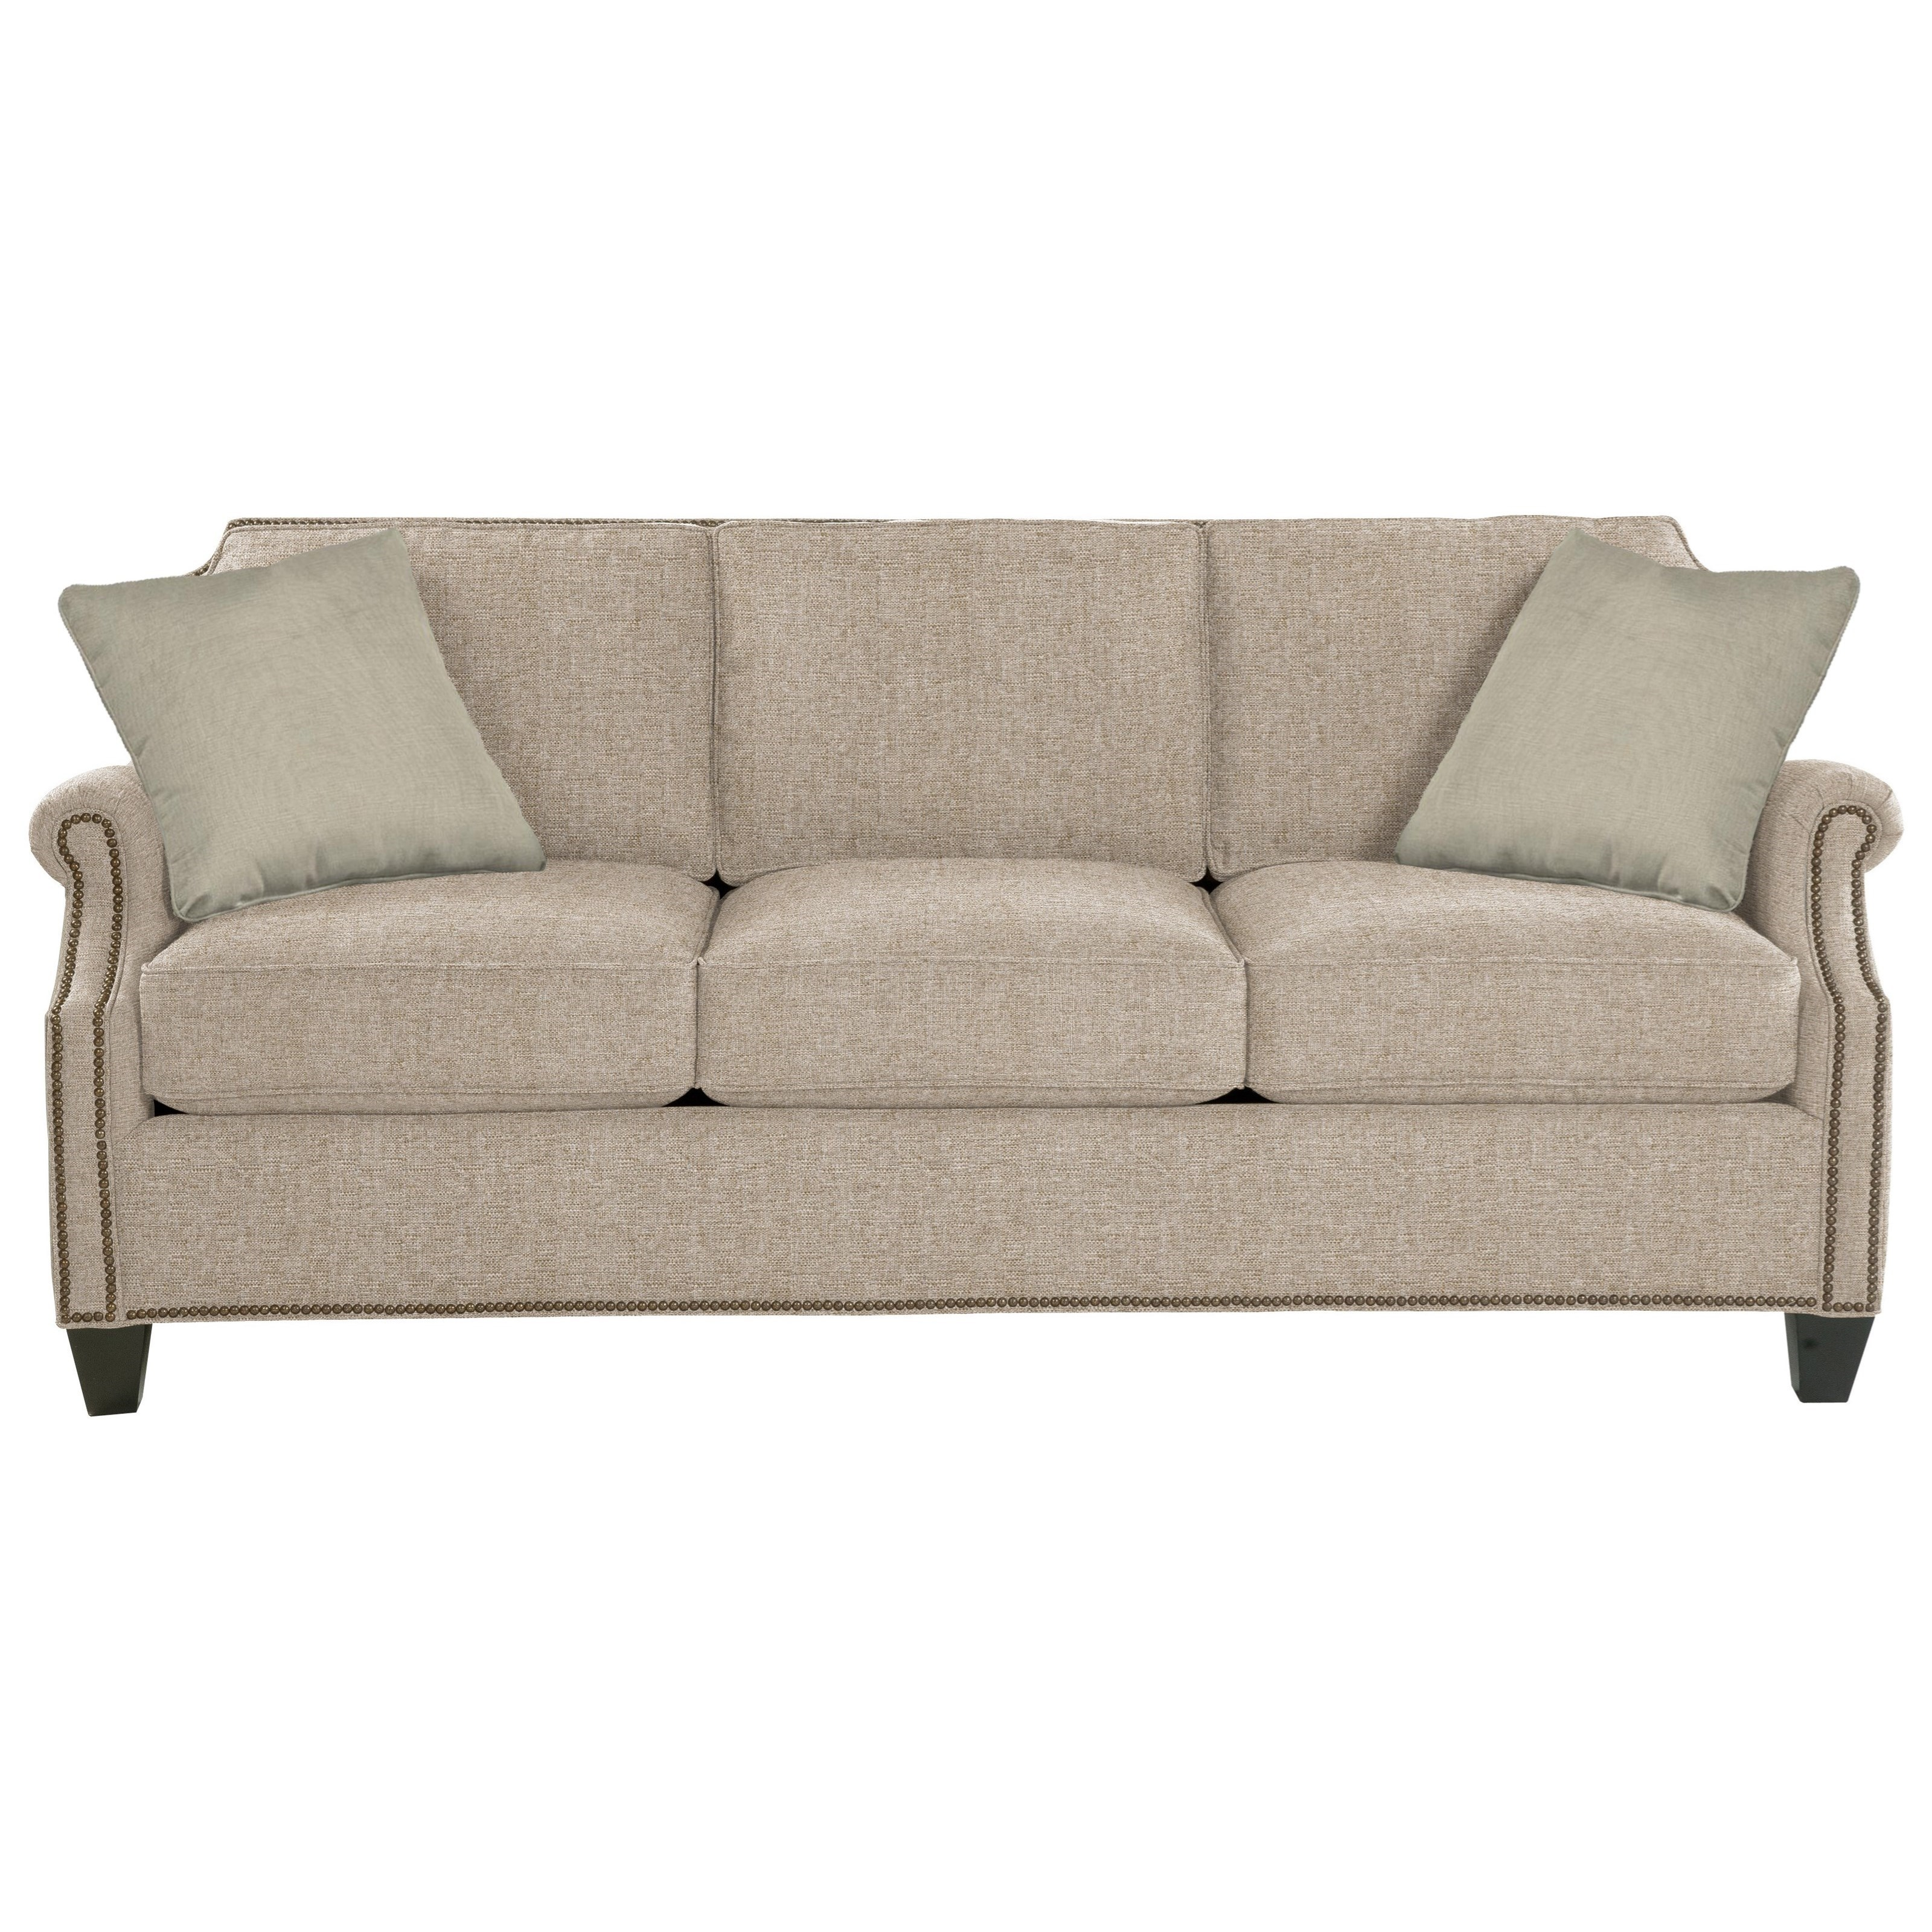 9383 Sofa by Hickory Craft at Godby Home Furnishings